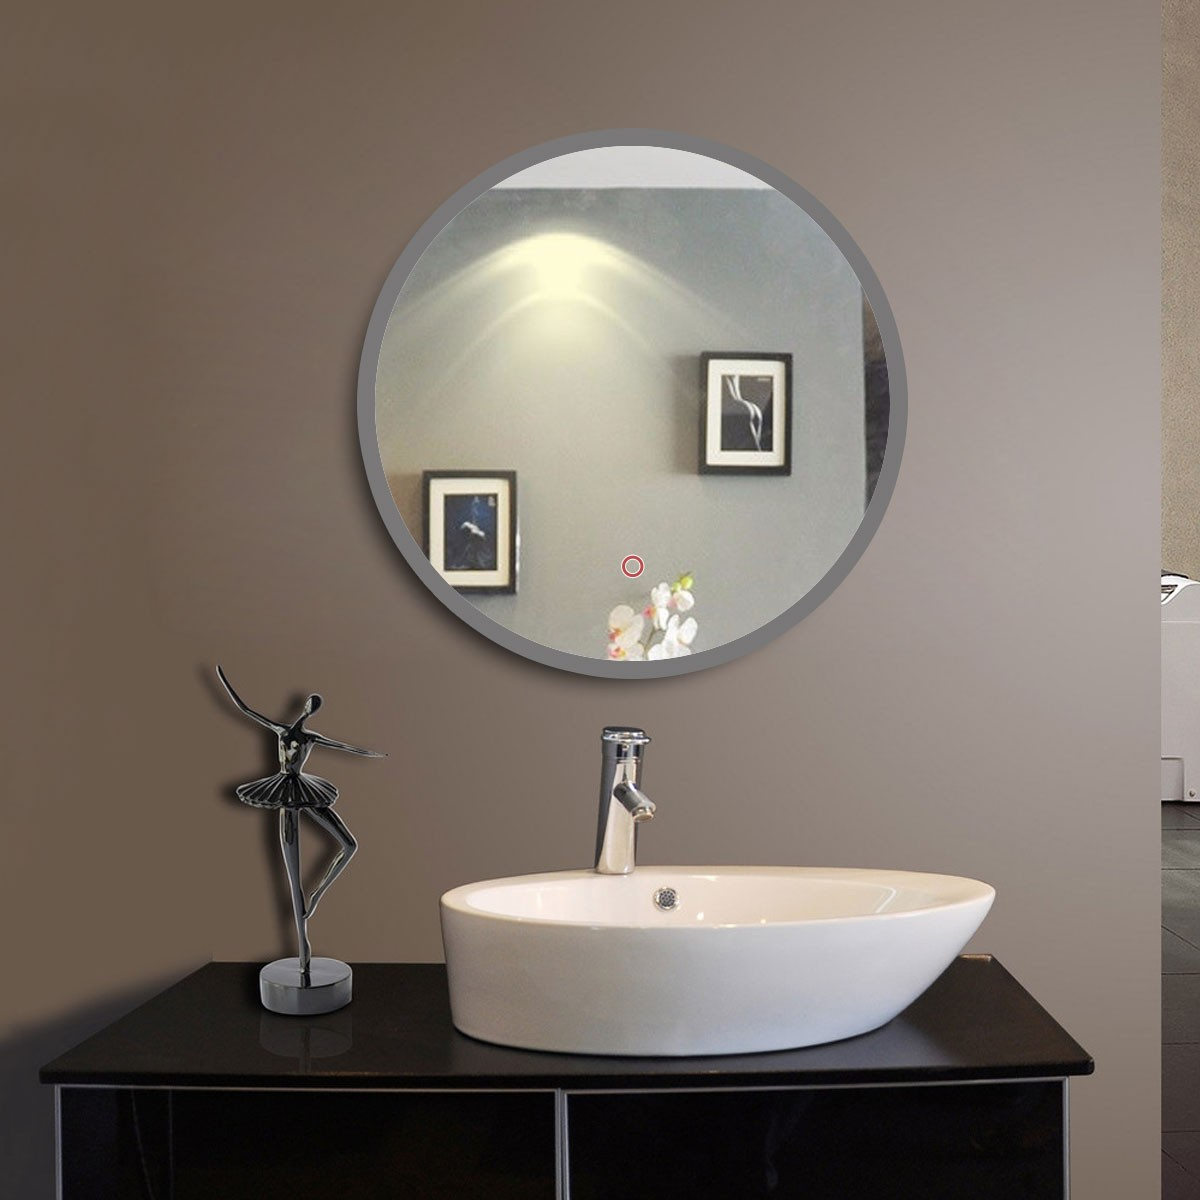 Decoraport Classic Bathroom Round Mirror Wall Mounted Backlit Vanity With Touch Sensor Frameless Lighted Makeup 36 X 28 Inch Cl065 1